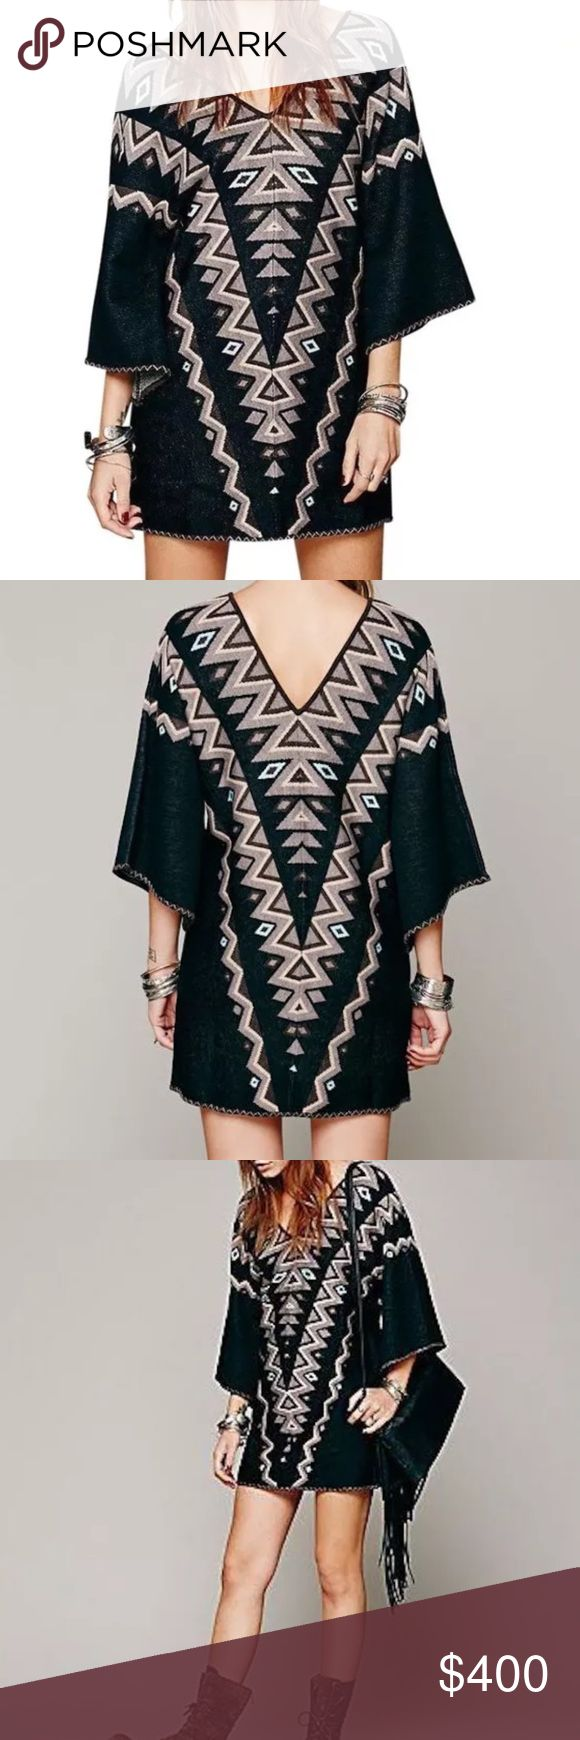 FREE PEOPLE Mini Dress Patterned Bohemian Classic Size Small. New With Tags.  $248 MSRP + Tax.  • Beautiful sweater mini dress featuring an effortless silhouette & ethnic design throughout. • Oversized, kimono-like sleeves with ribbed double v-neckline.  • Woven black and brown mixed triangle motif pattern. • Wear as a mini dress or tunic.  • Soft, unlined silhouette. • By Wildheart for Free People.  {Southern Girl Fashion - Closet Policy}  ✔️ Same-Business-Day Shipping (10am CT) ✔️ Price…